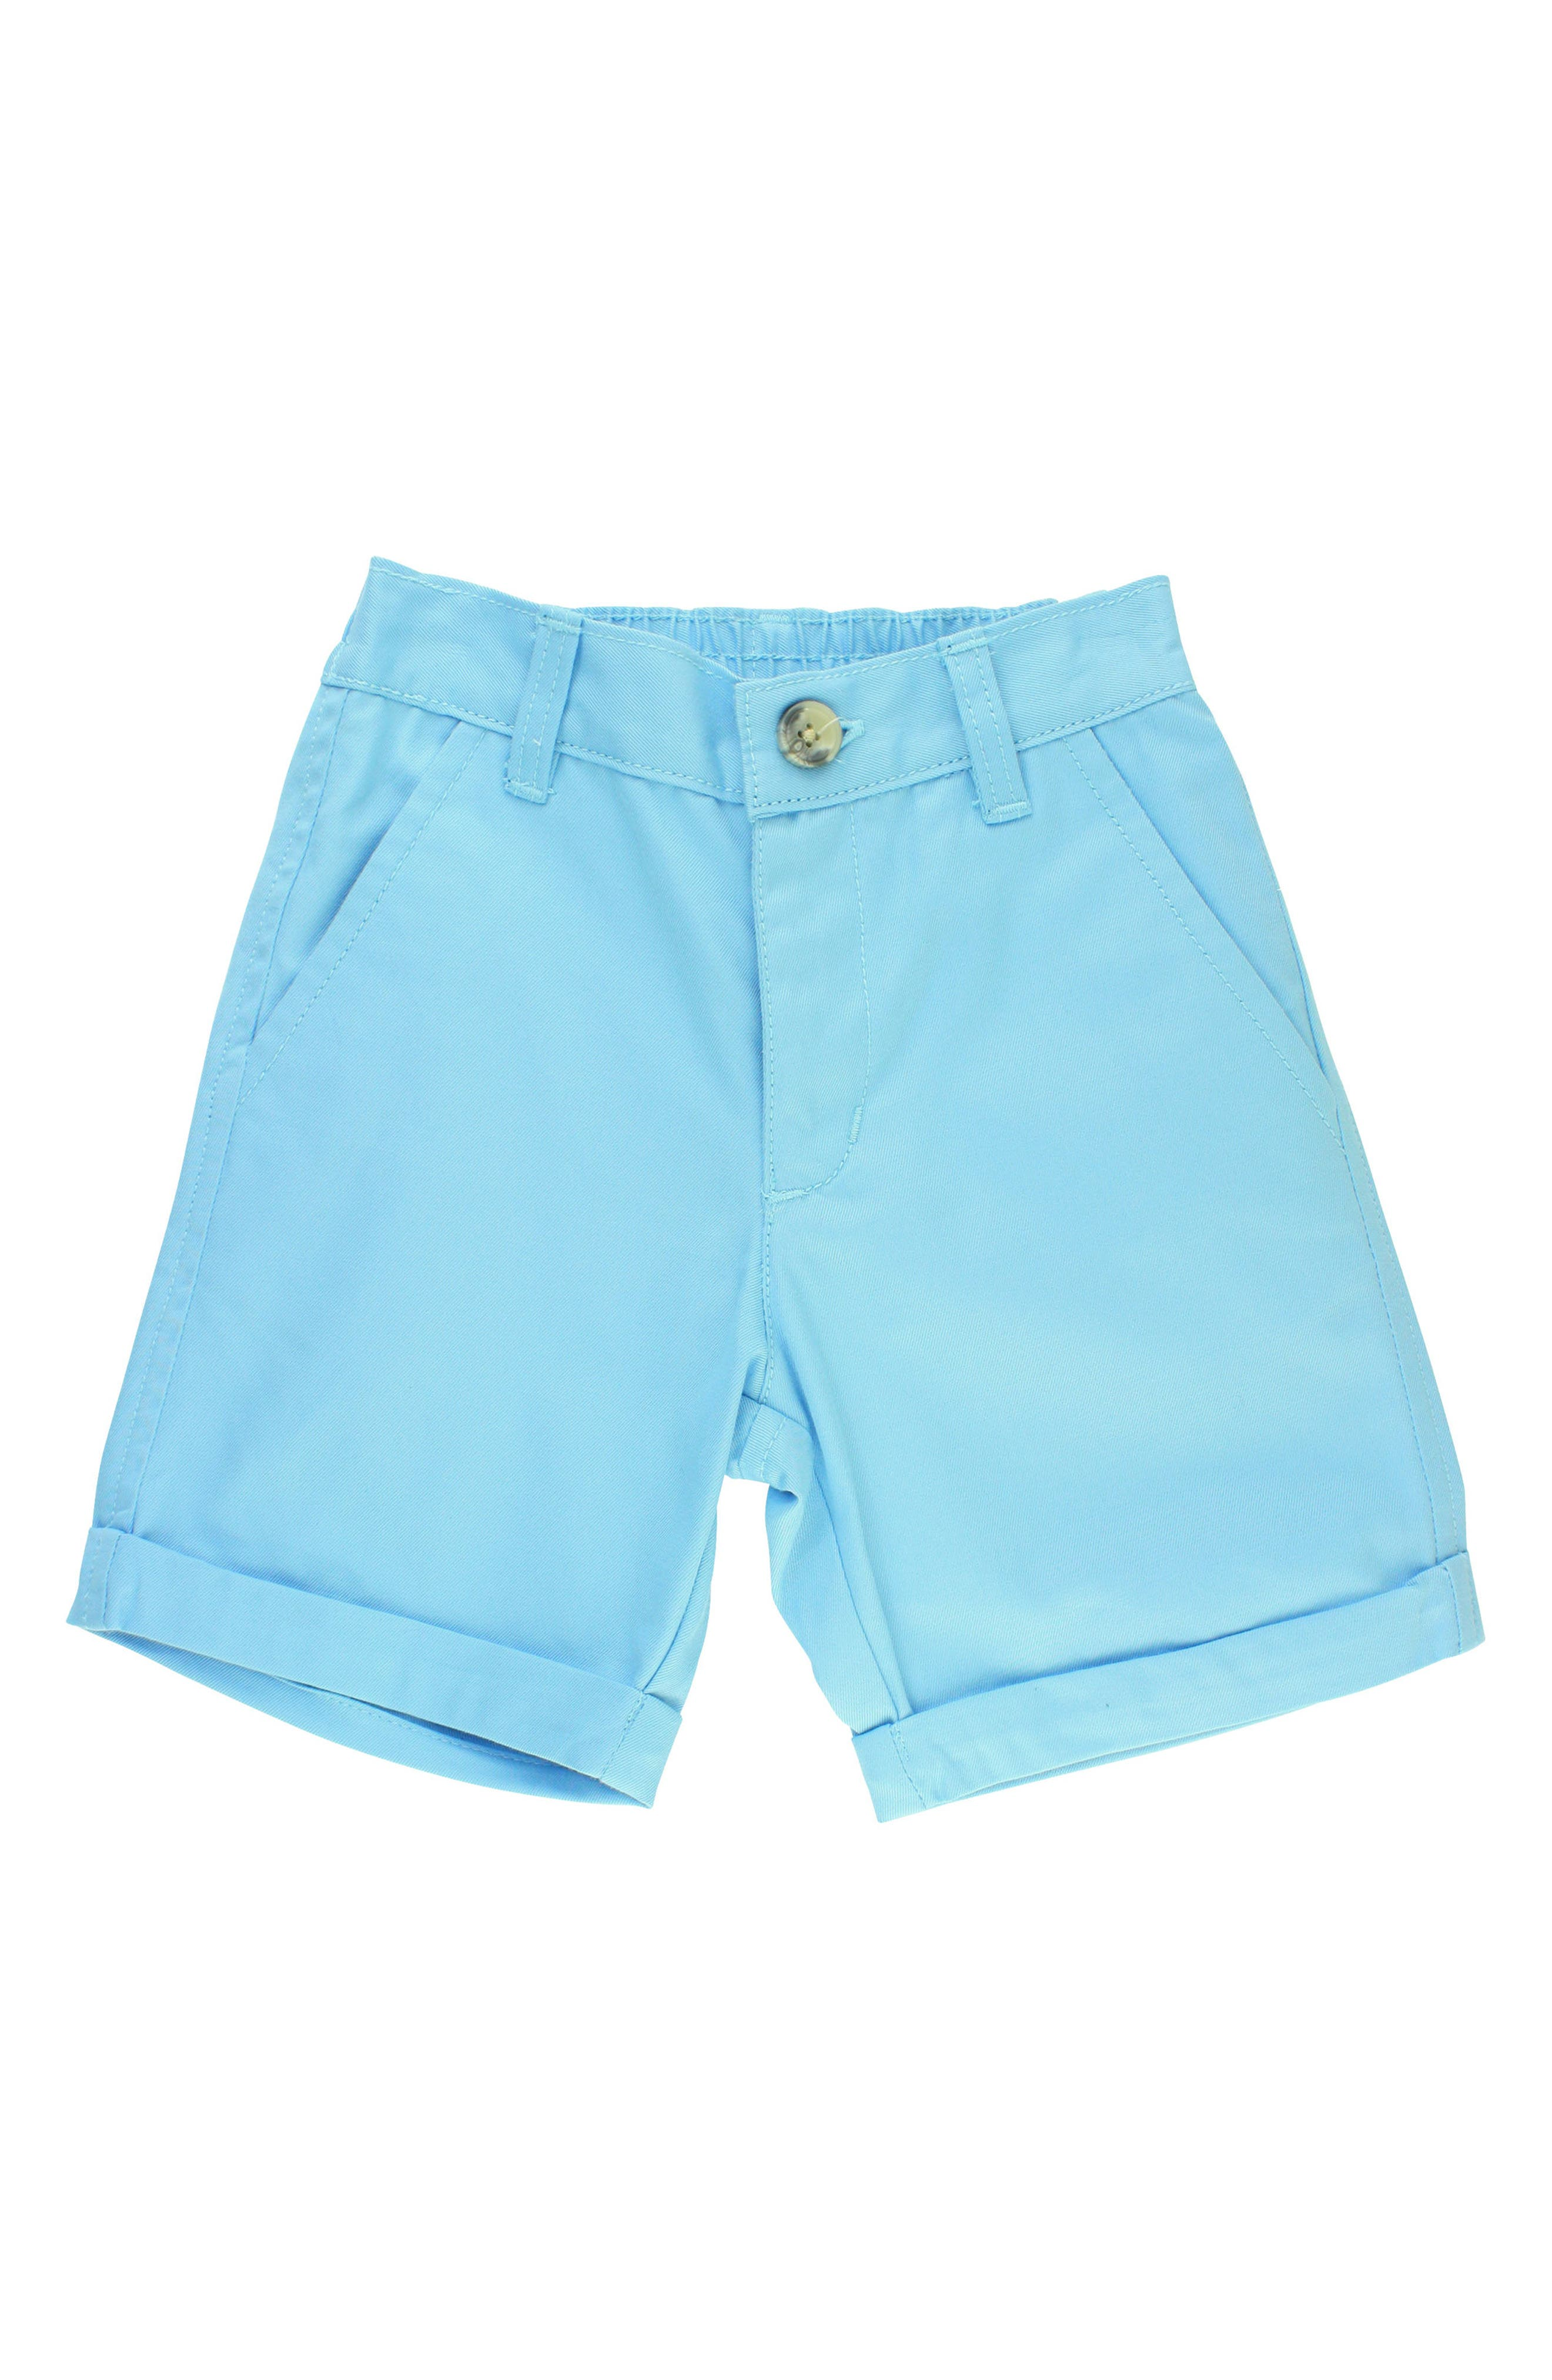 Chino Shorts,                             Main thumbnail 1, color,                             Blue